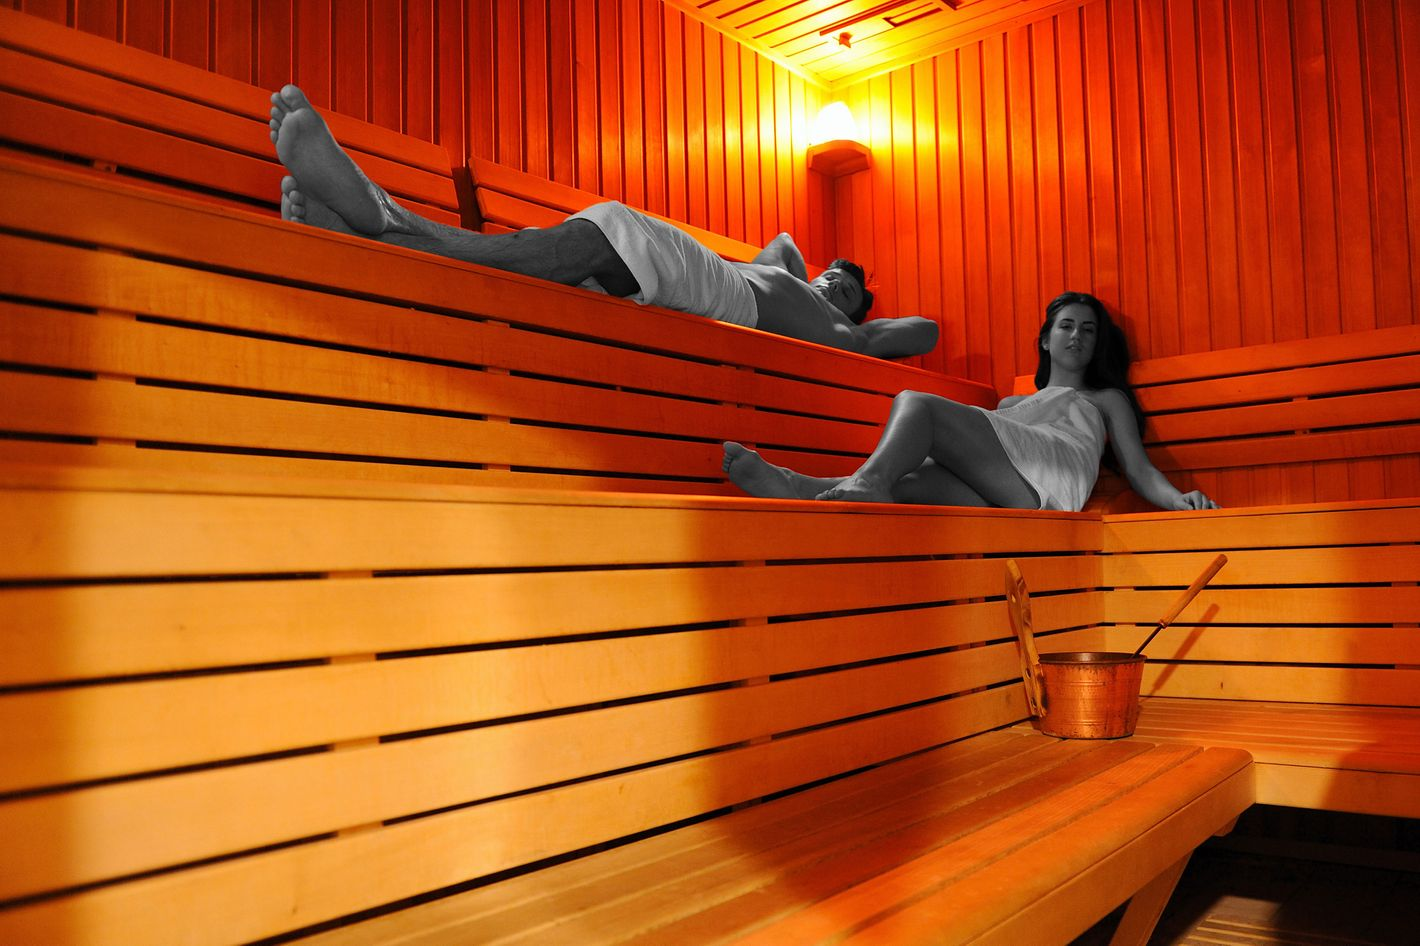 The Easiest Way to Burn 600 Calories Is by Sitting in a 150-Degree Box